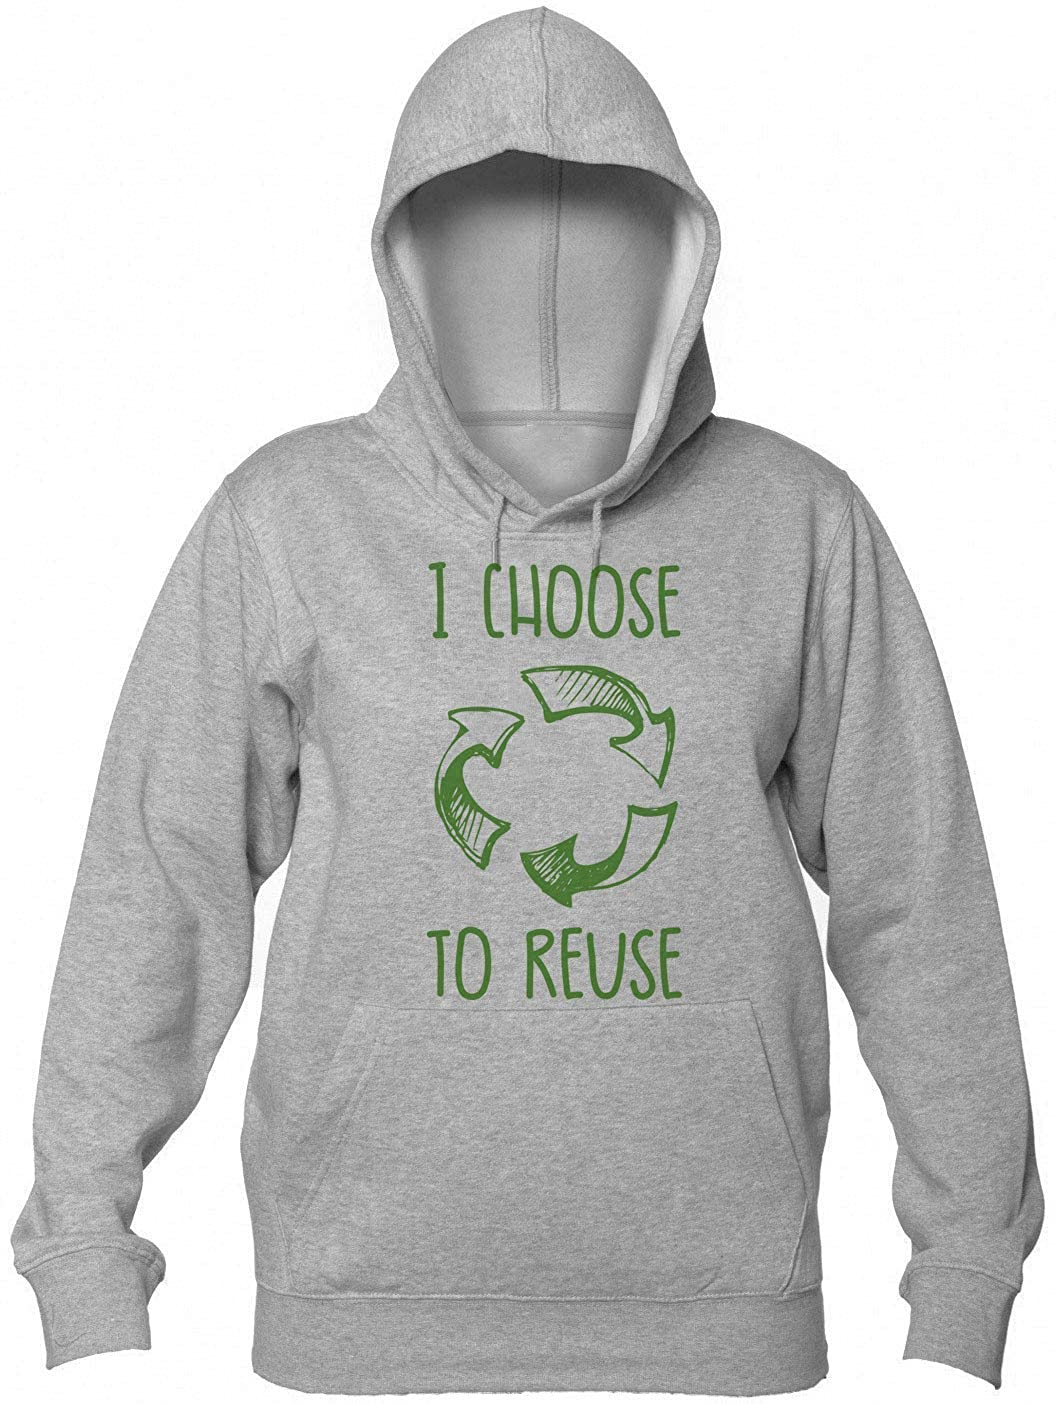 Finest Prints I Choose To Reuse Recycling Cycle Motivational Anti-Trash Design Felpa con Cappuccio da Donna fines-HoodieWOMs-juod-CEEI